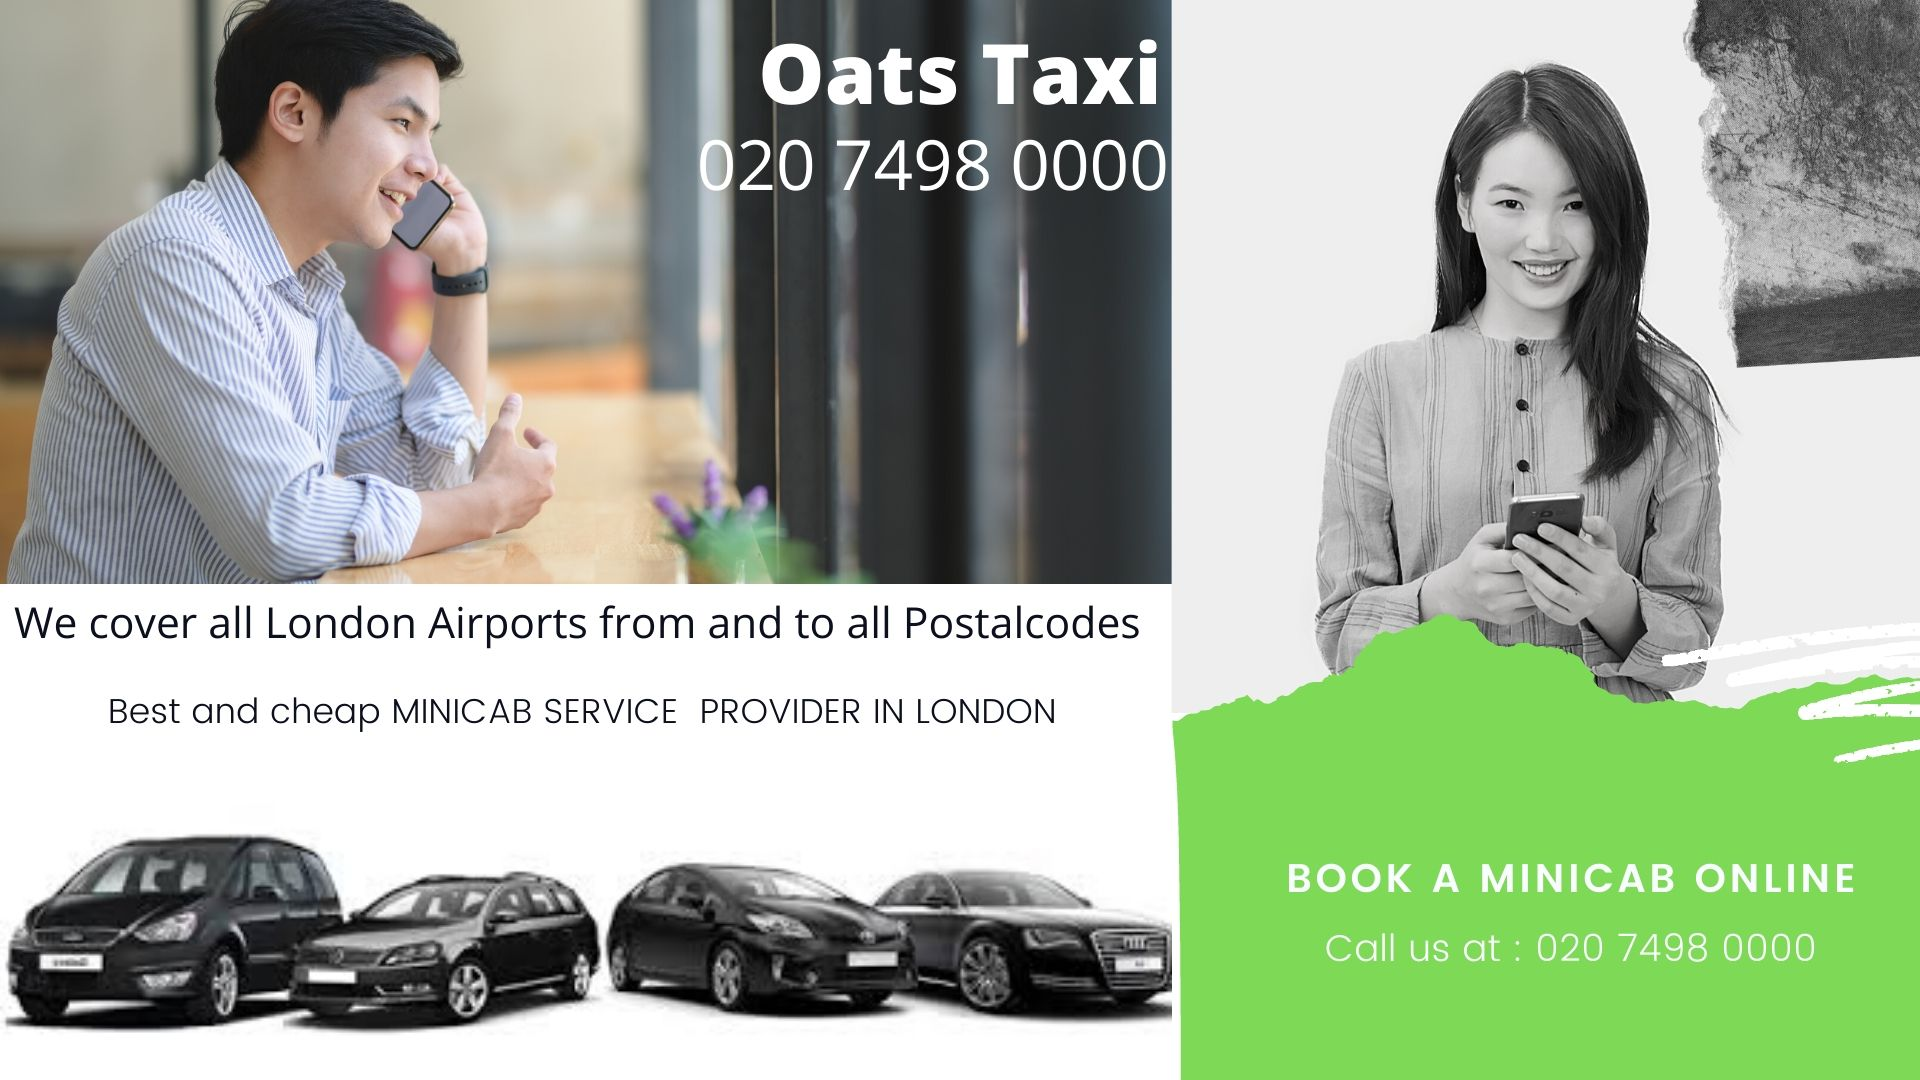 Nearest Minicab Office in Walton-on-Thames | Minicab Gatwick Airport | Call now : 02074980000